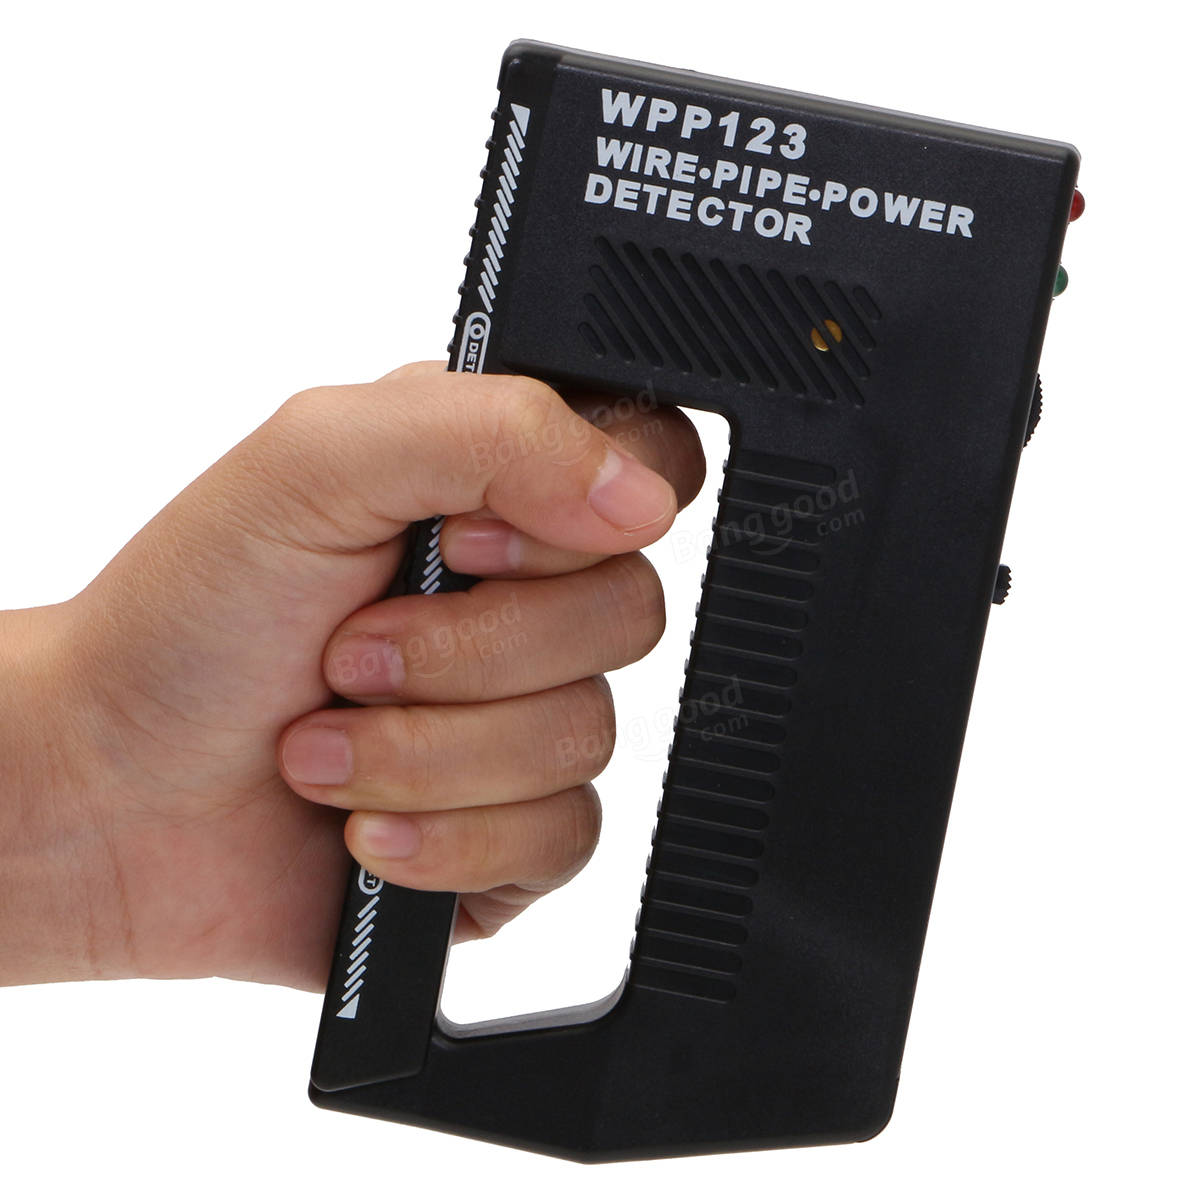 Handheld WPP123 Metal Detector Wall Wire Pipe Power Audible Alarm Scanner Tool